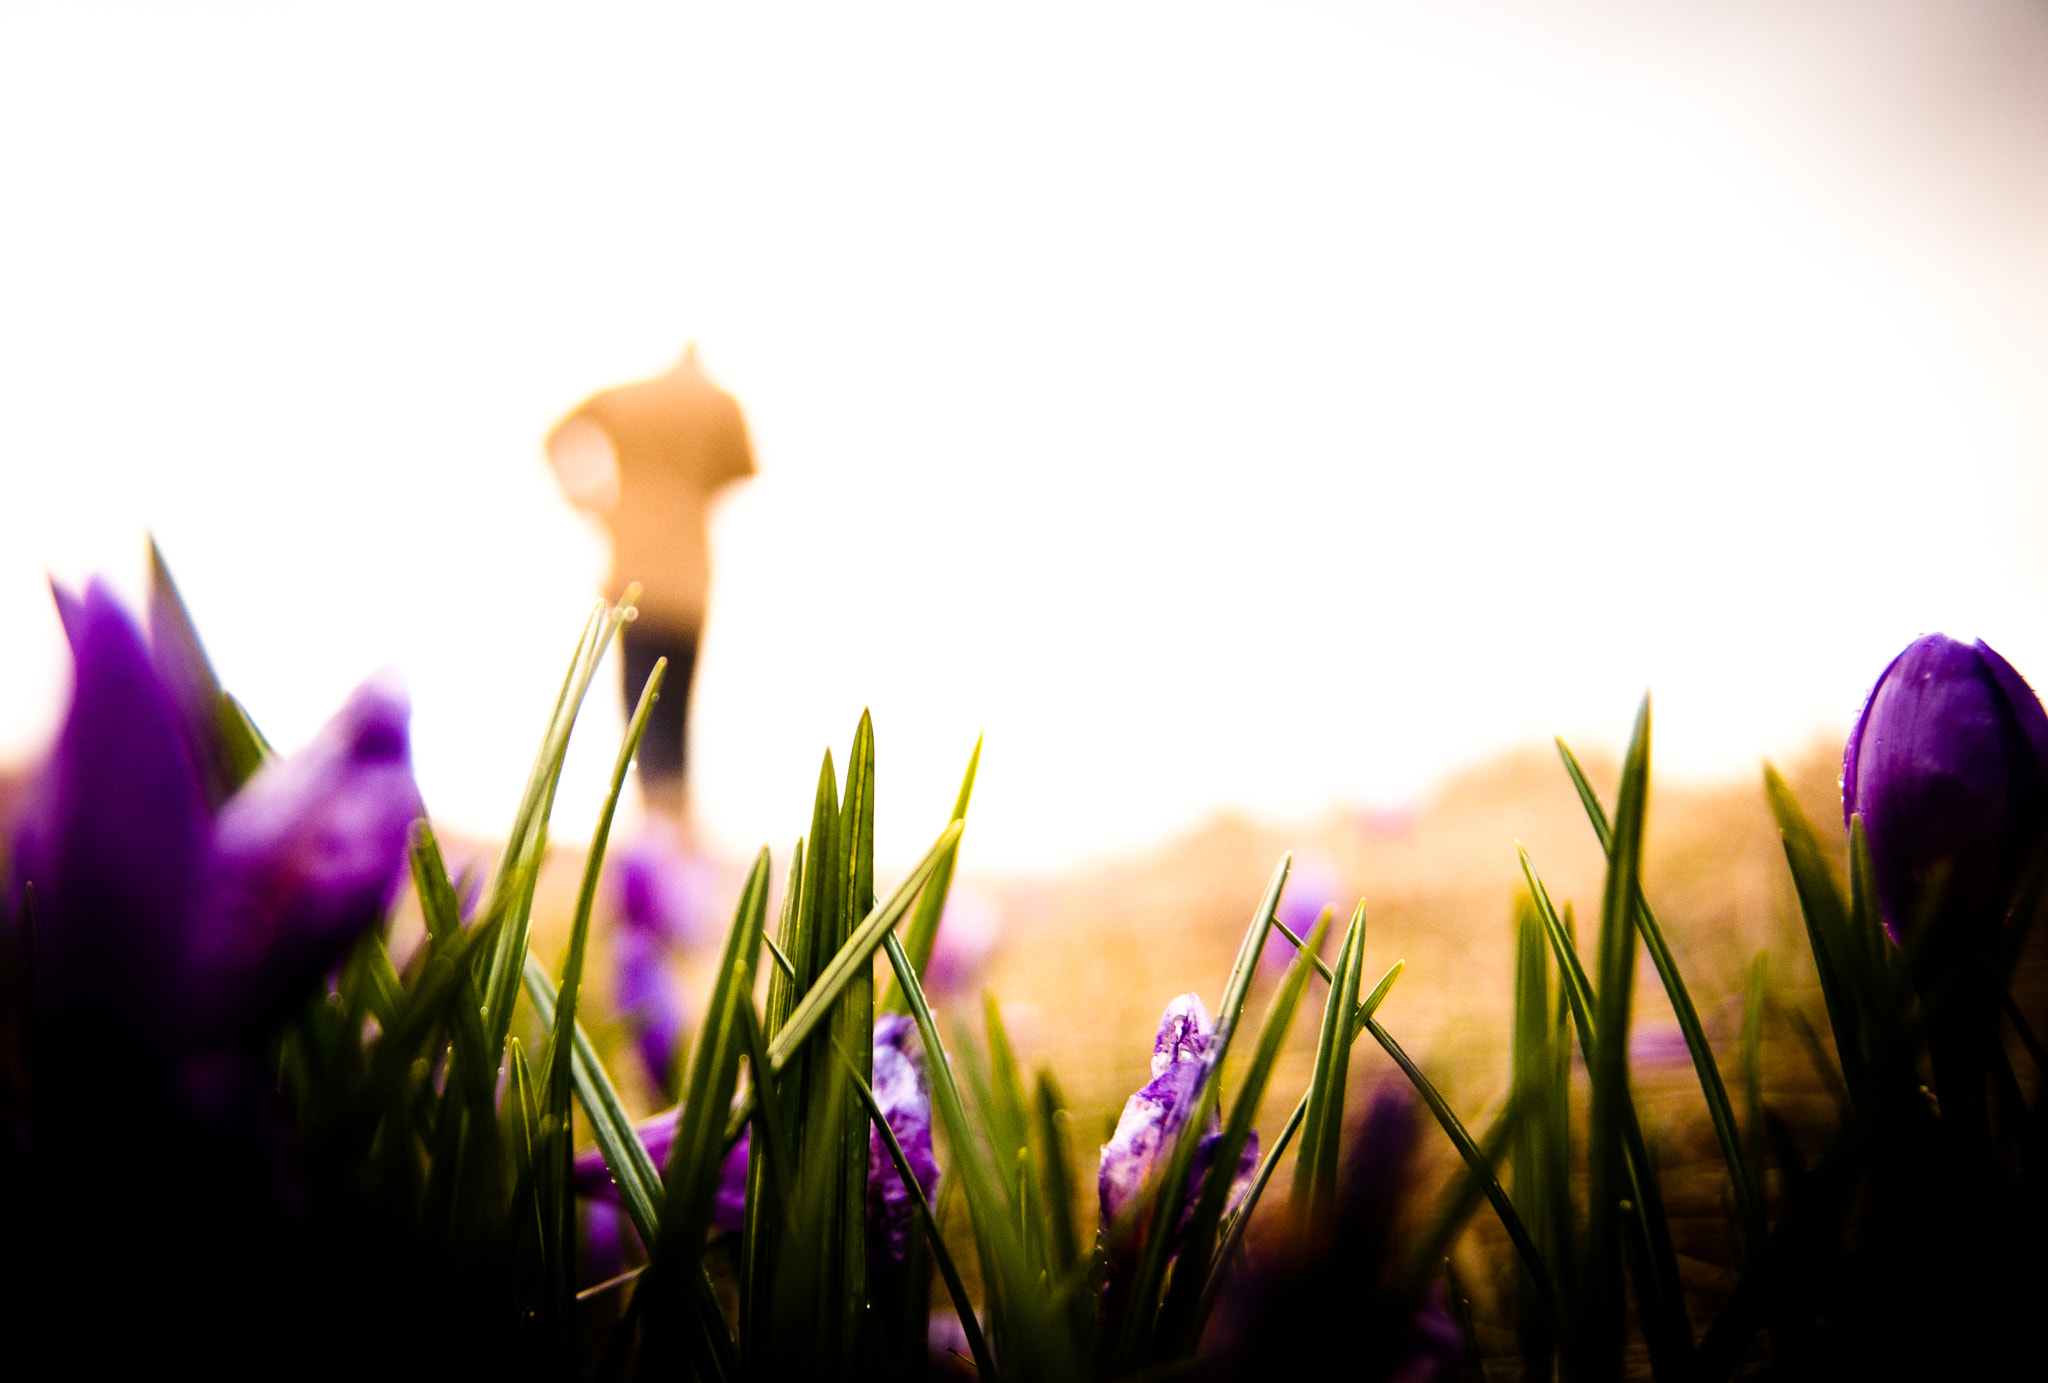 Photograph purple sunny day by Lirca Lucian on 500px